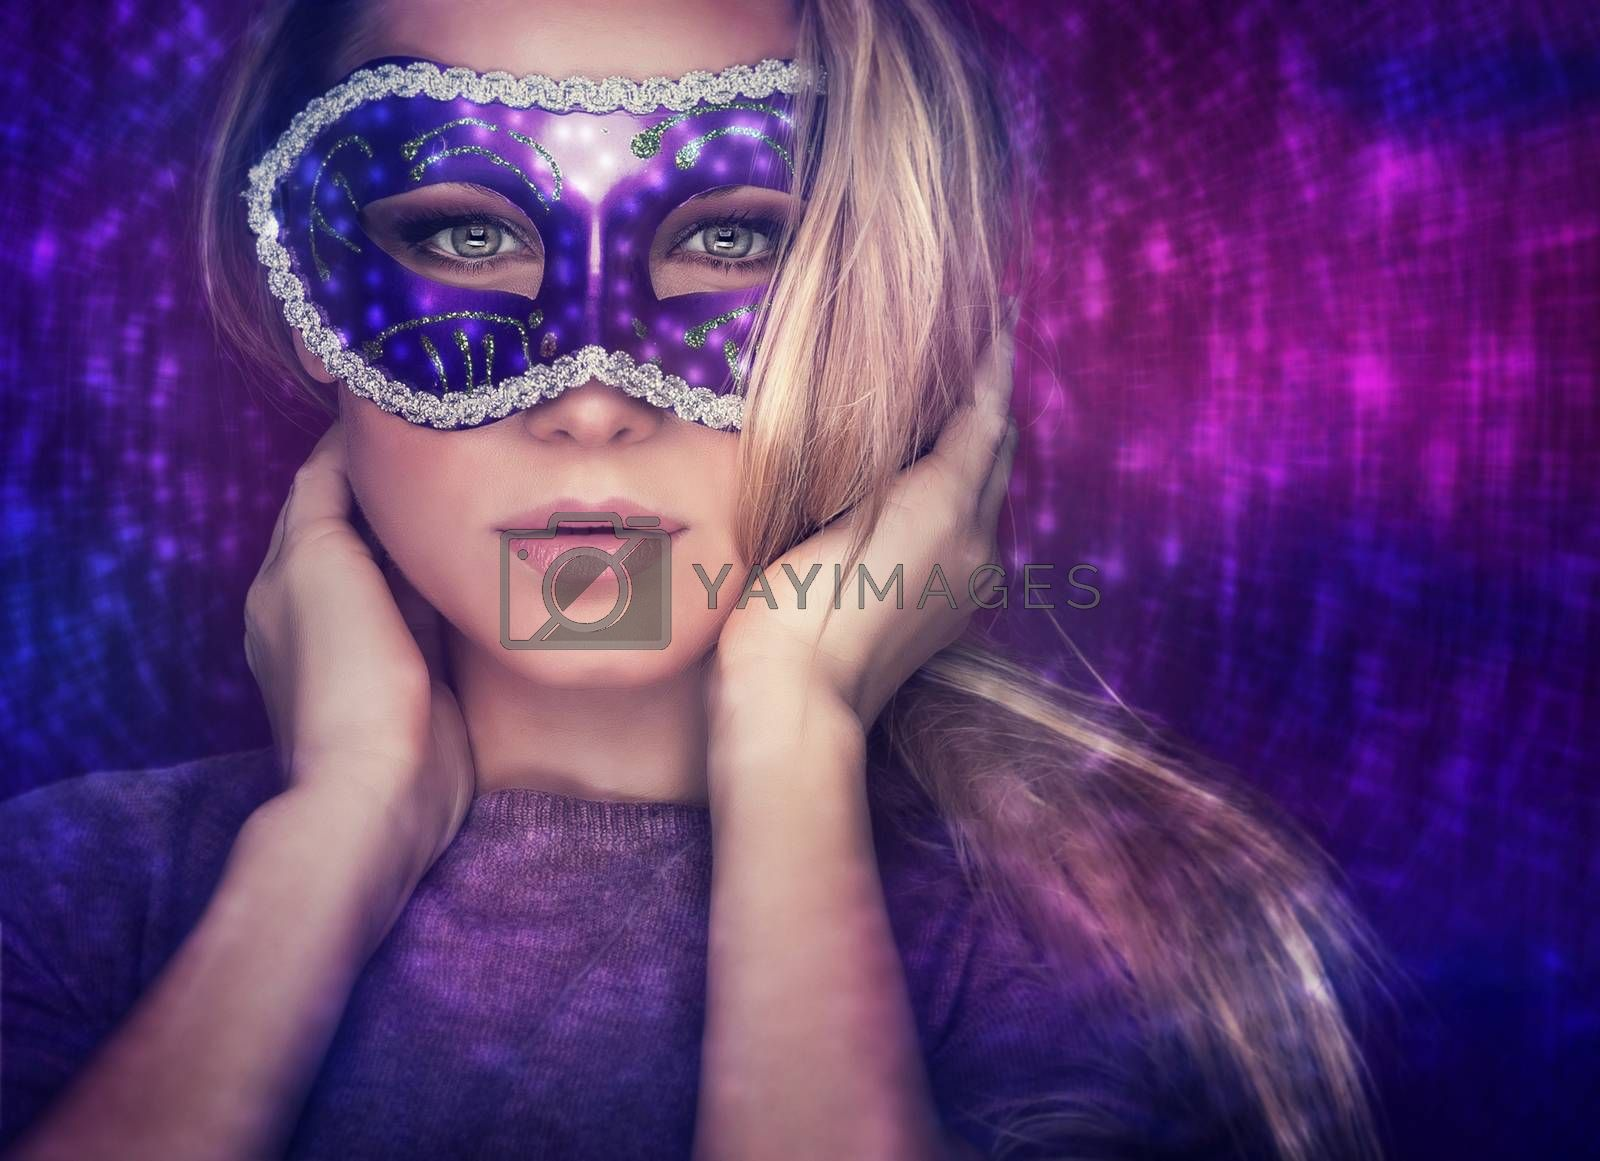 Beautiful female wearing mask, mysterious girl with nice makeup at masquerade, stylish woman portrait studio shot over party light background, holiday celebration